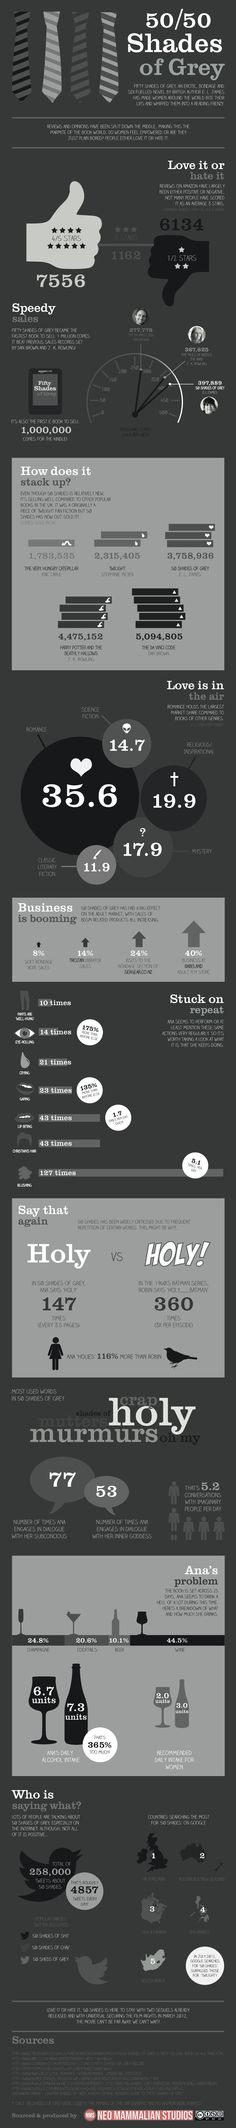 50 Shades of Grey Infographic